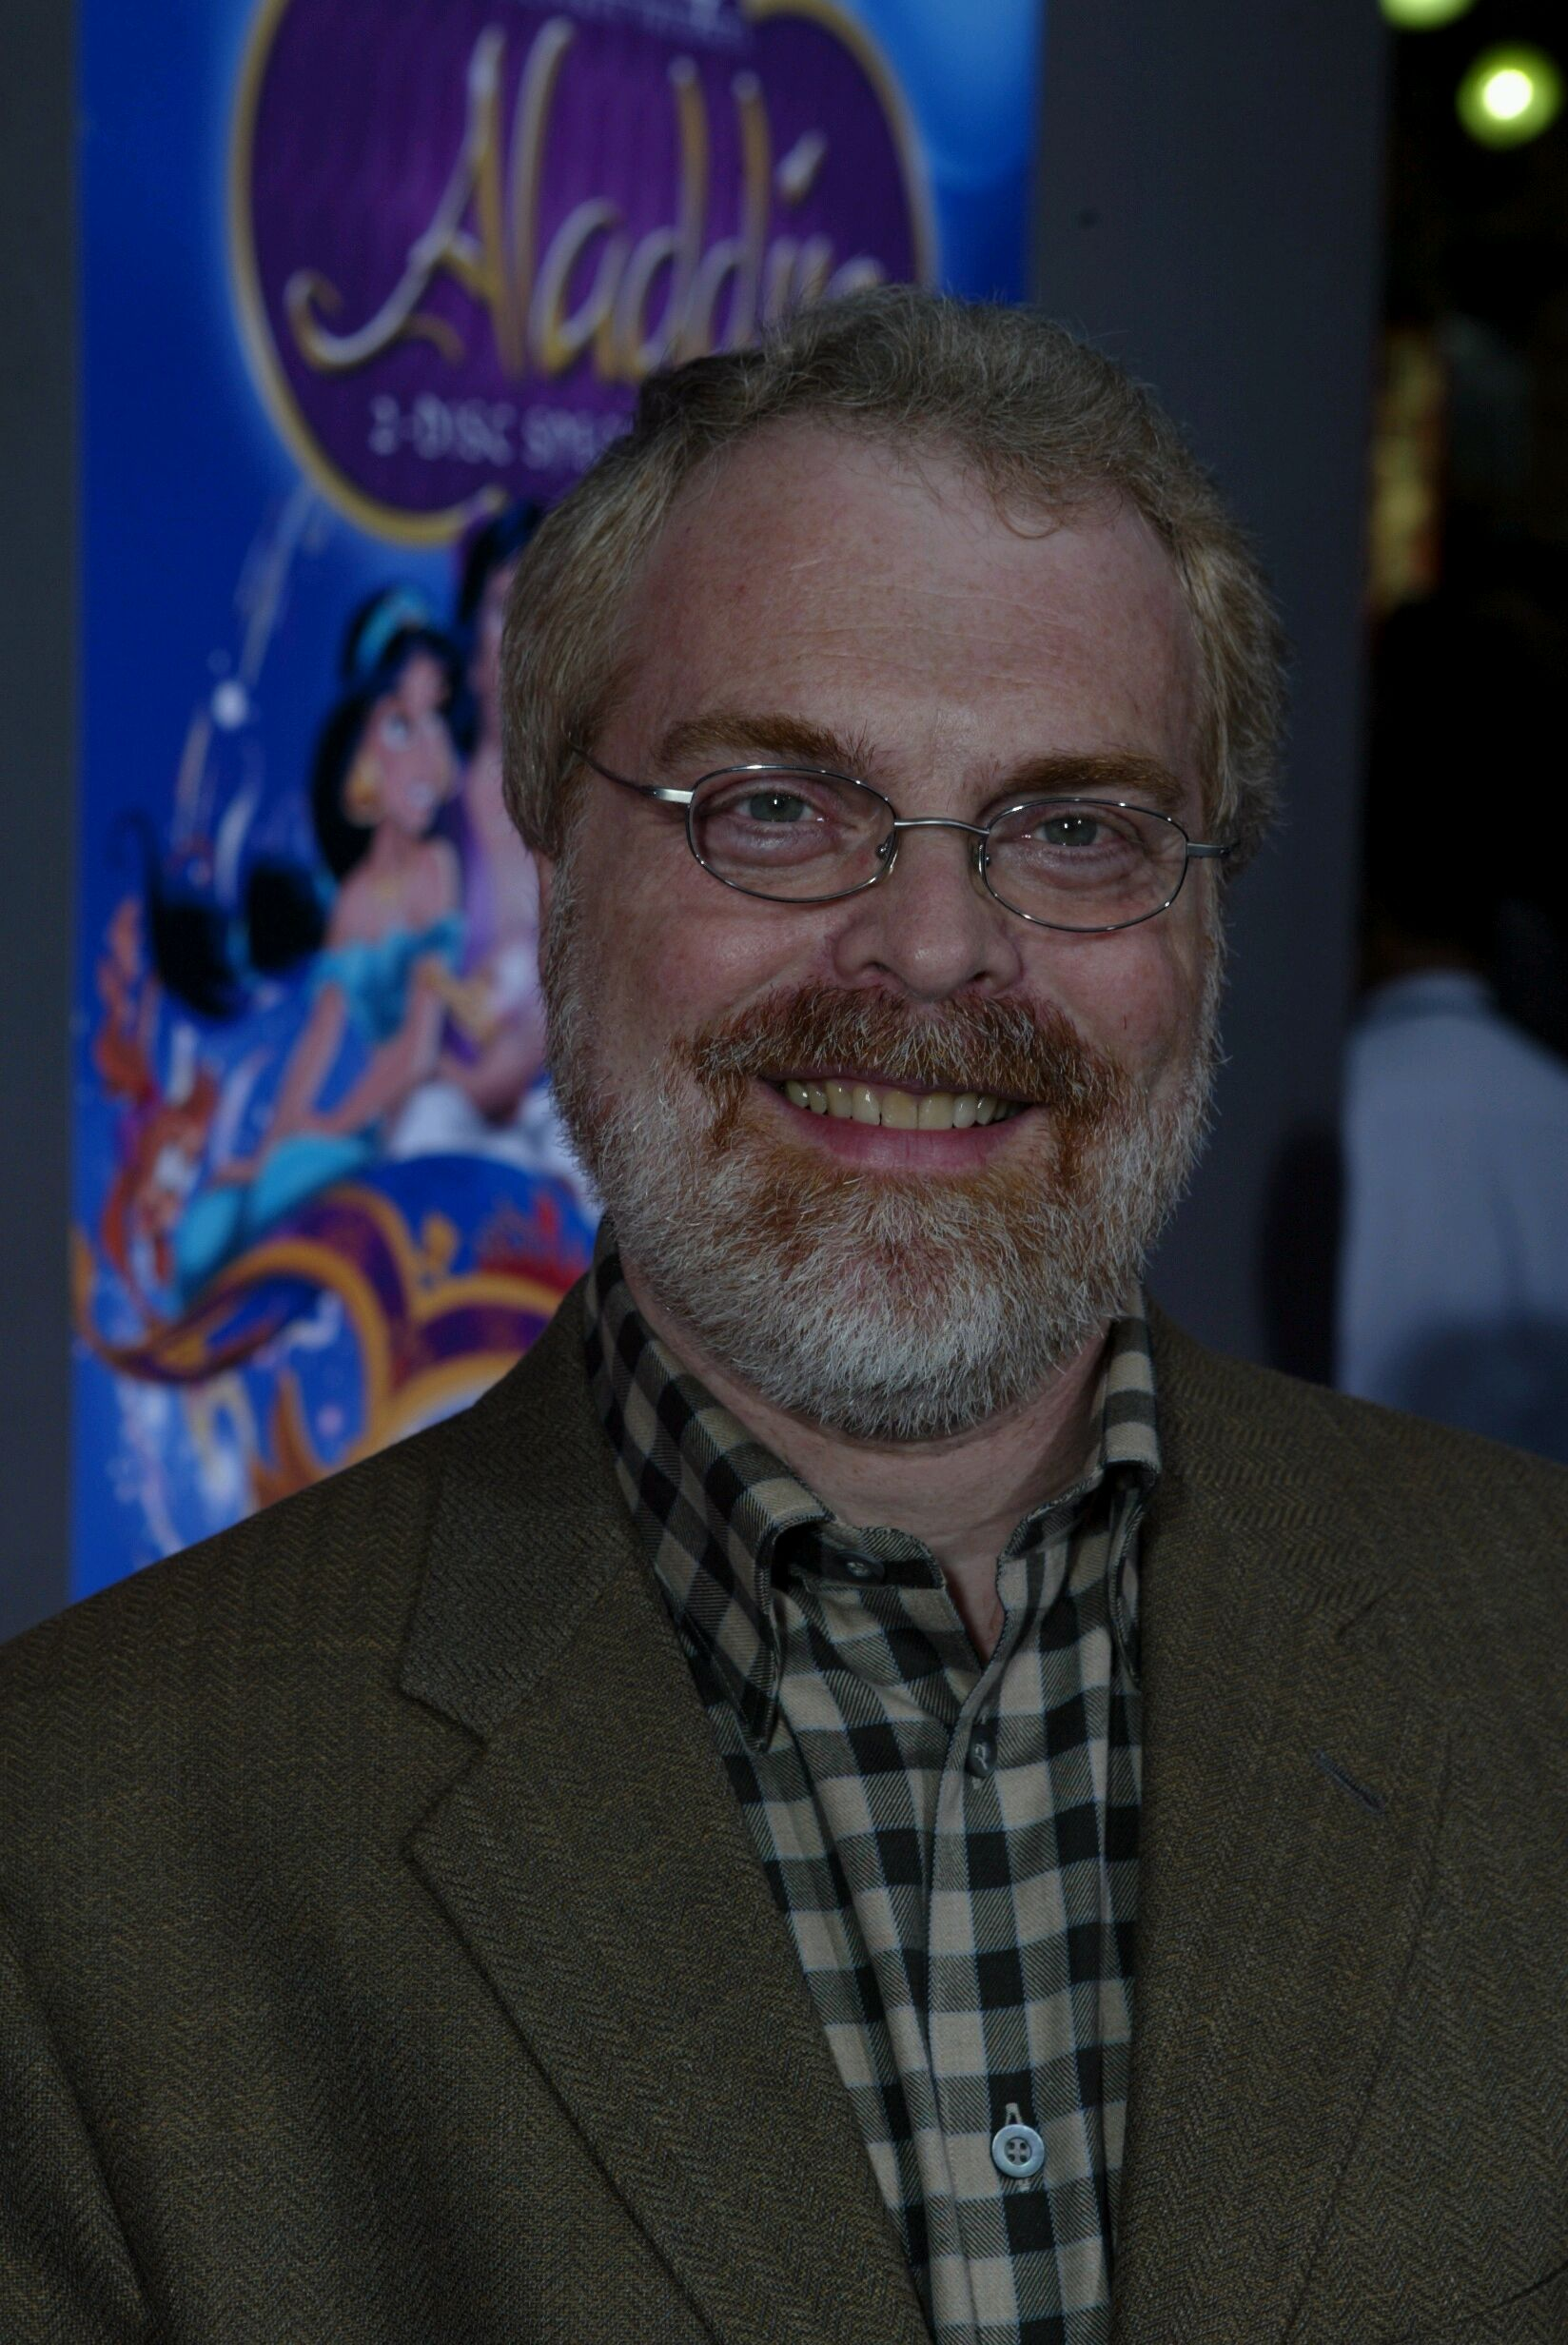 ron clements contactron clements john musker, ron clements linkedin, ron clements interview, ron clements instagram, ron clements facebook, ron clements twitter, ron clements, ron clements contact, ron clements aladdin, ron clements the little mermaid 3d, ron clements net worth, ron clements sporting news, ron clements y john musker, ron clements et john musker, ron clements biography, ron clements imdb, ron clements email, ron clements greenville sc, ron clements movies, ron clements electrical